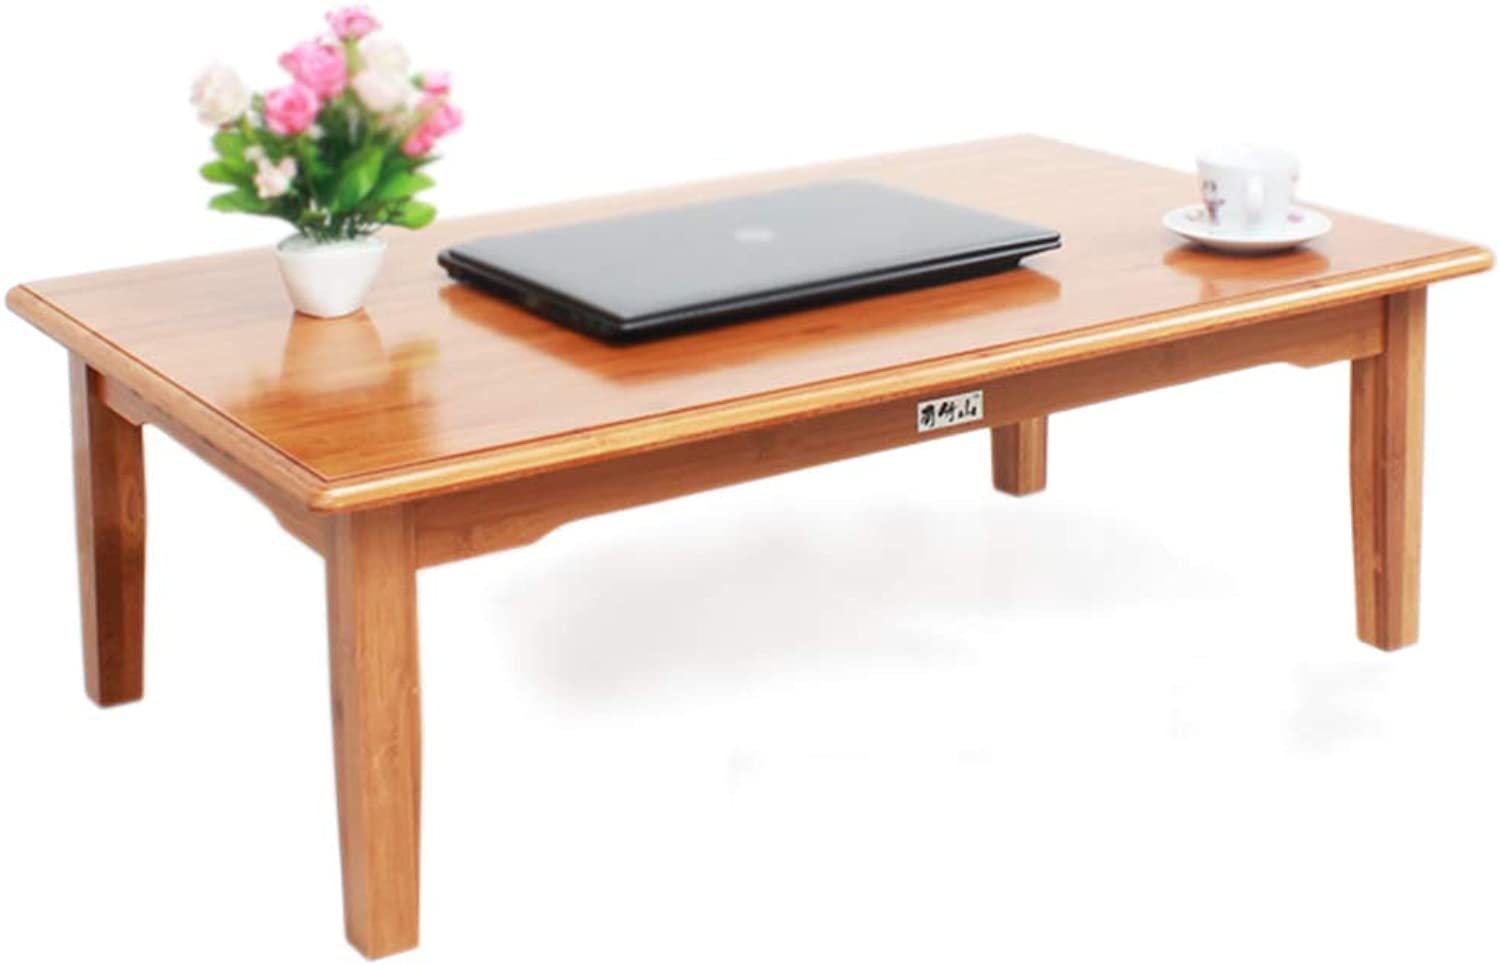 Tea Table Tatami Bamboo Table Home Large Modern Minimalist Rectangular Short Table Bay Window Table Solid Wood Coffee Table Table (color   Brown, Size   80  60  32cm)